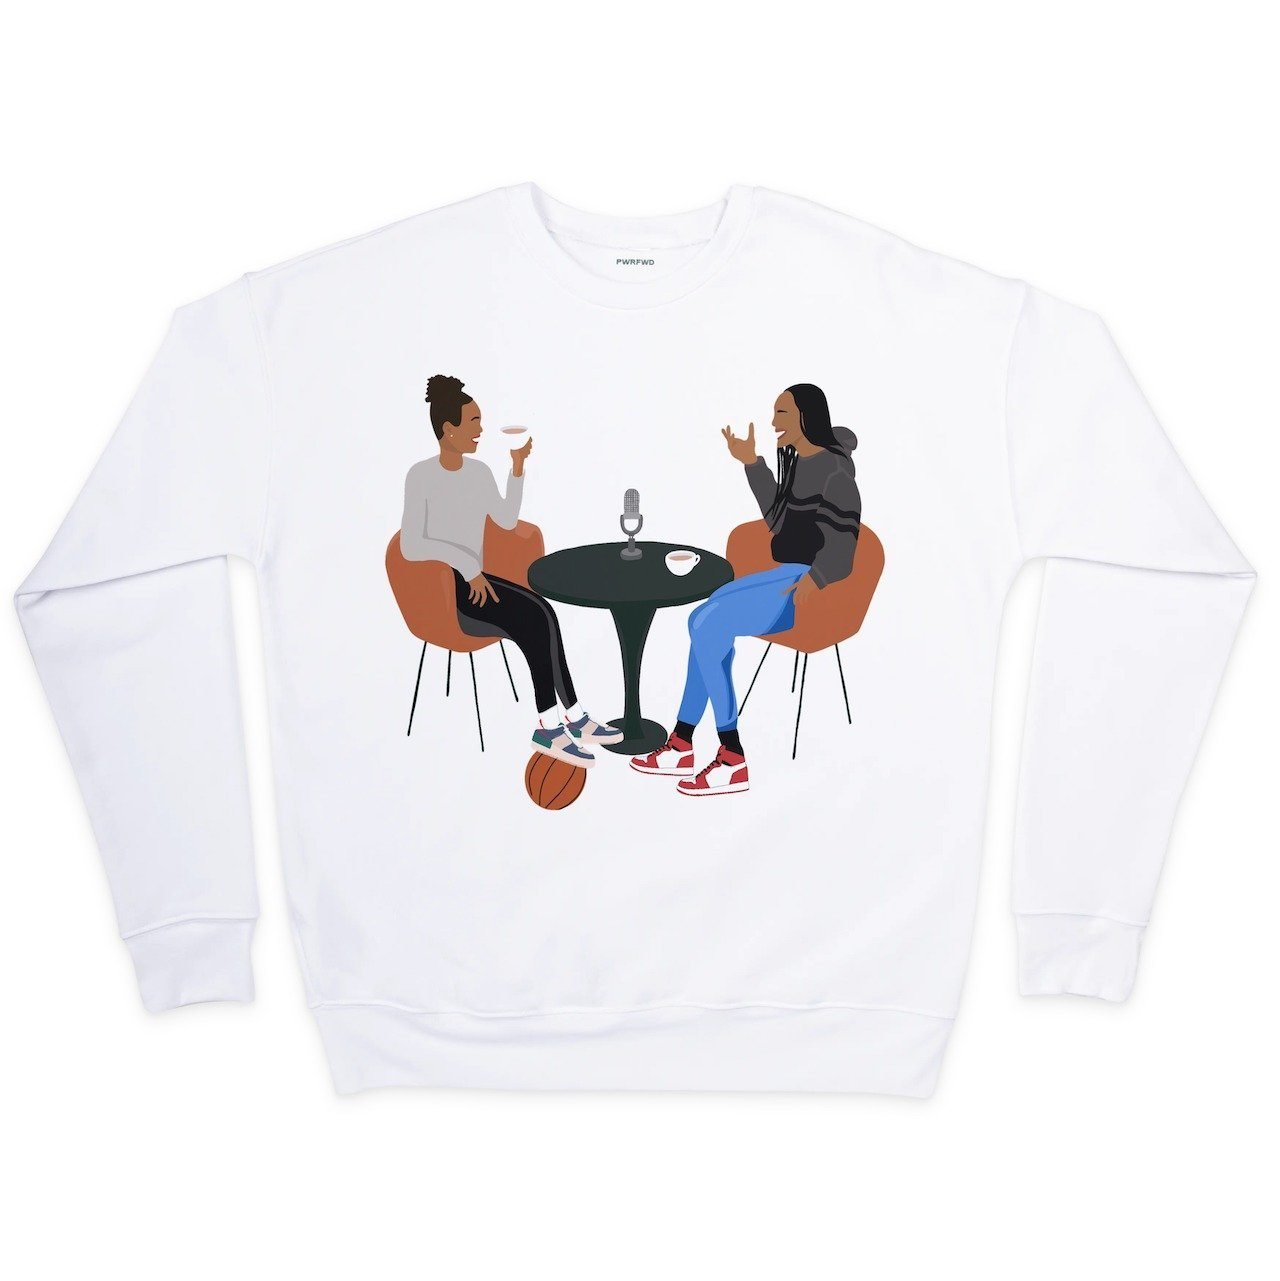 A'ja Wilson Tea Time Crew Neck Sweatshirt